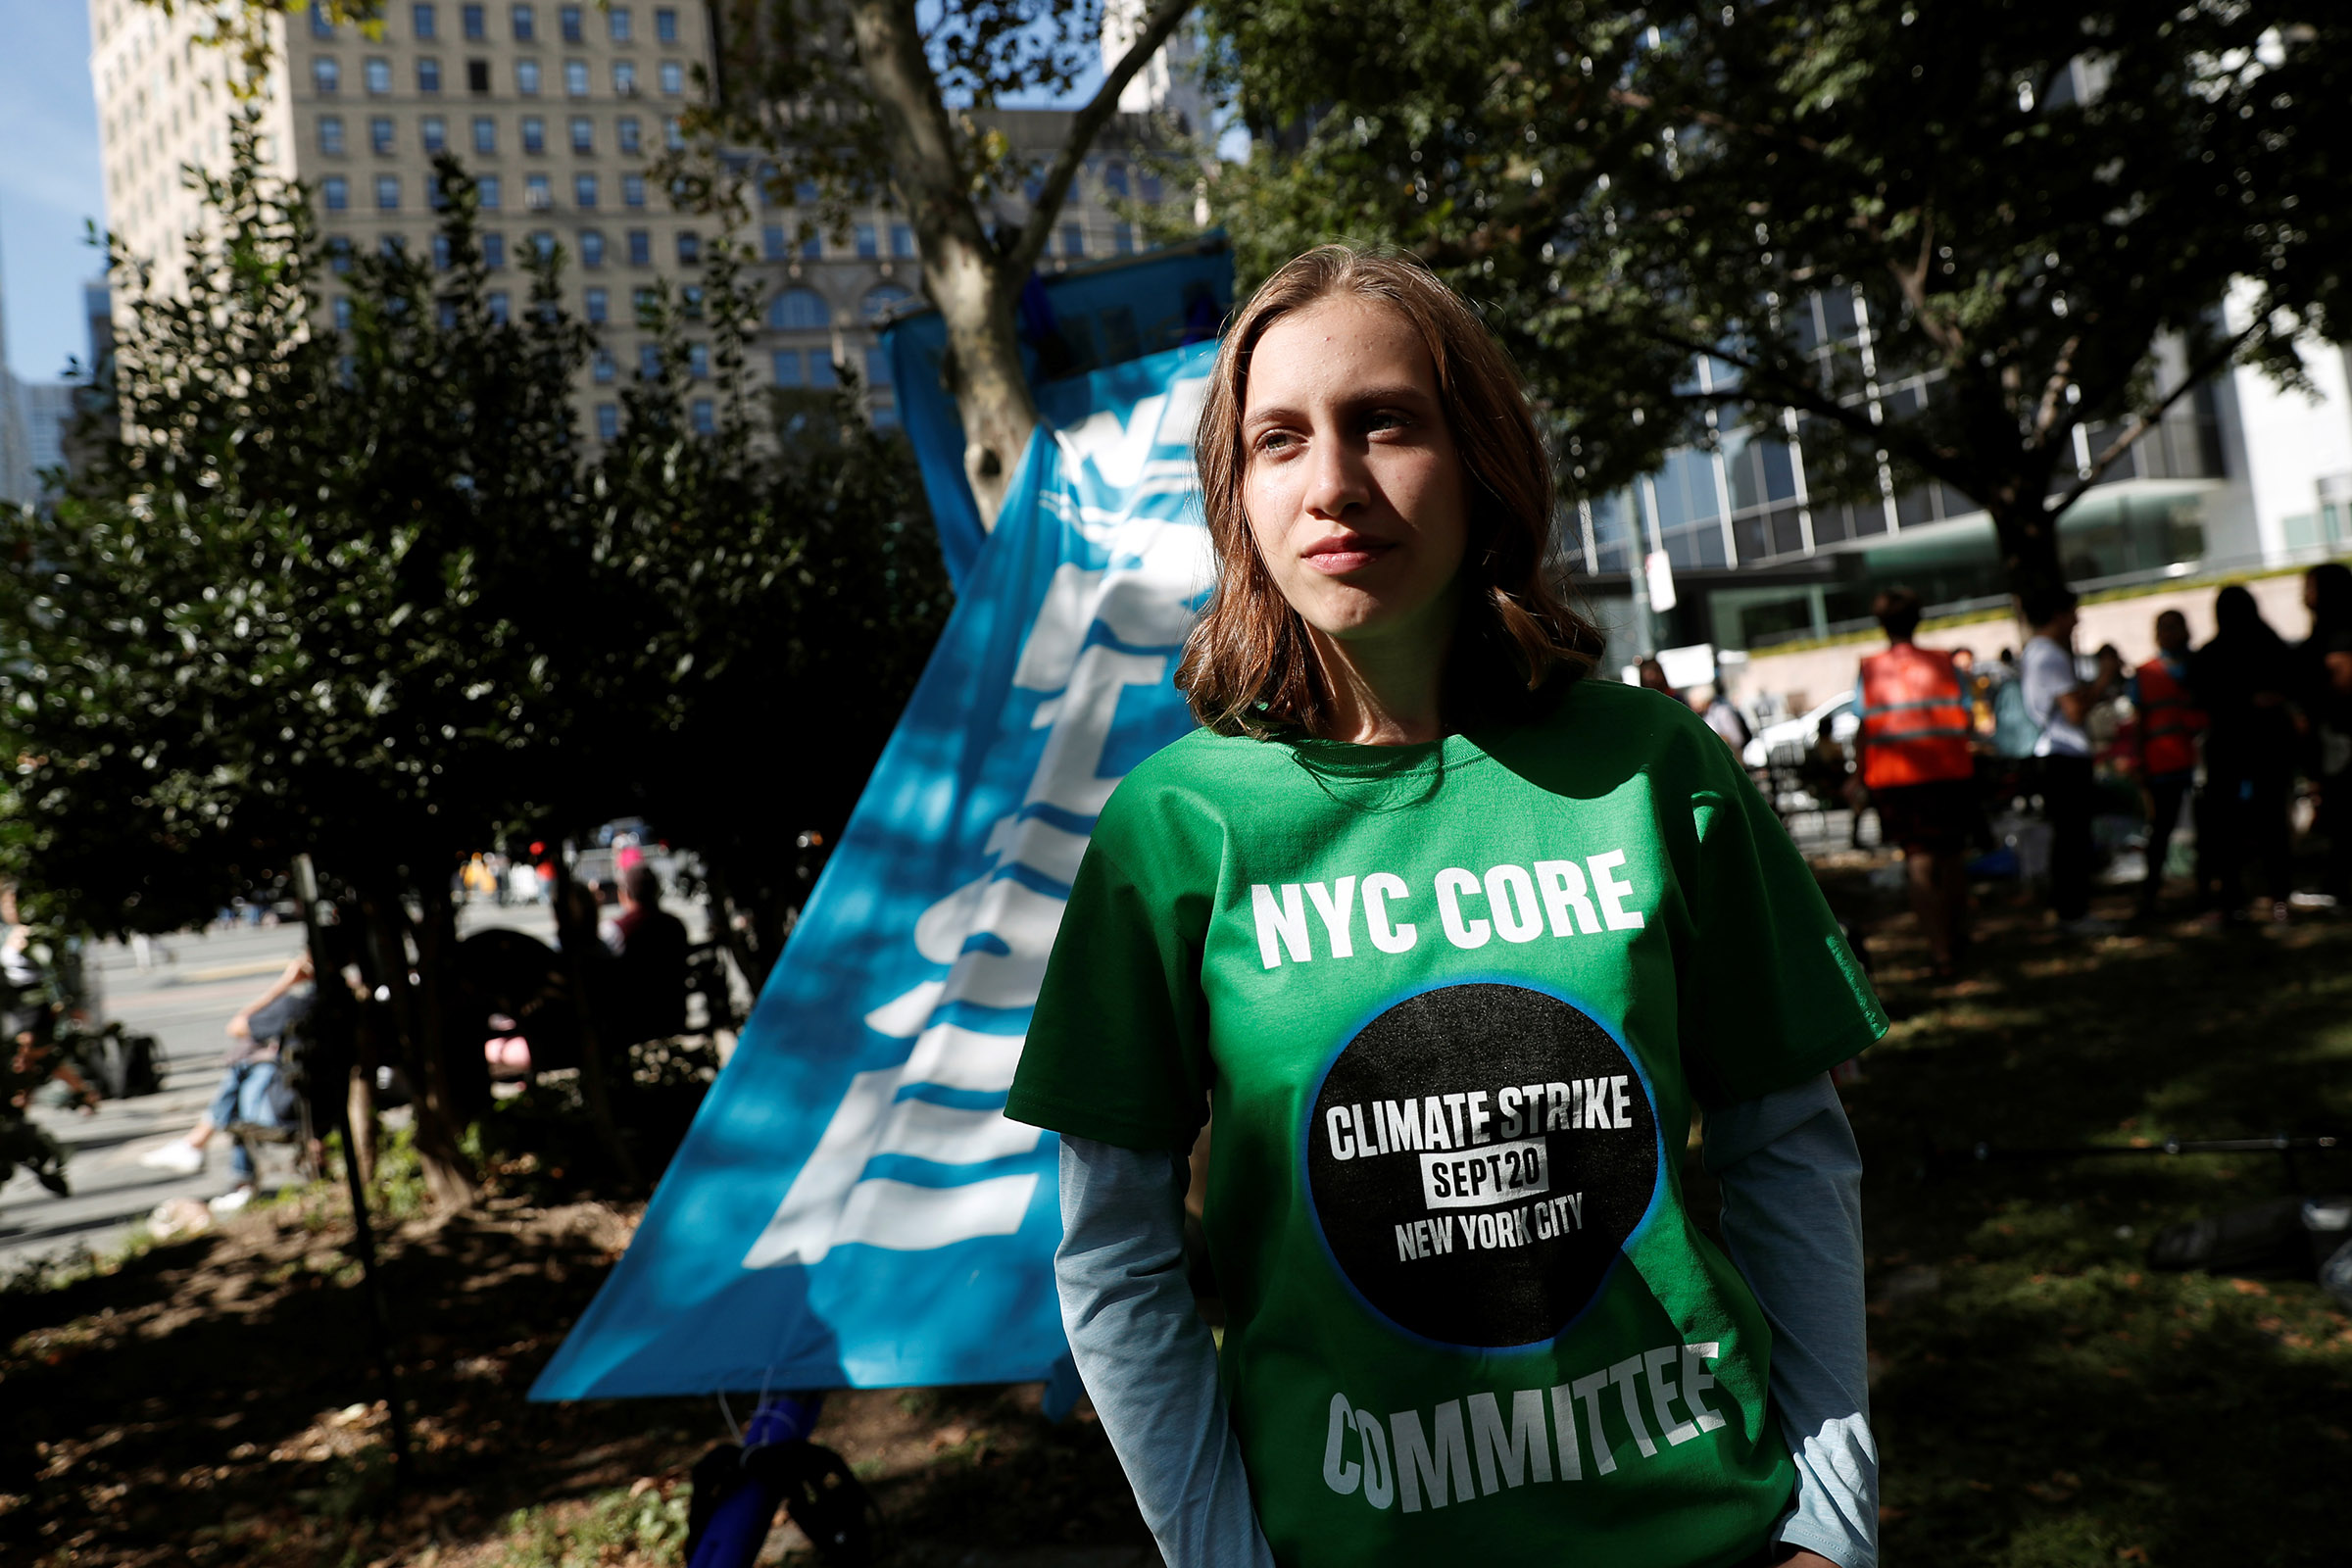 14-year-old activist Alexandria Villasenor takes part in a demonstration as part of the Global Climate Strike in Manhattan in New York, U.S., Sept. 20, 2019.